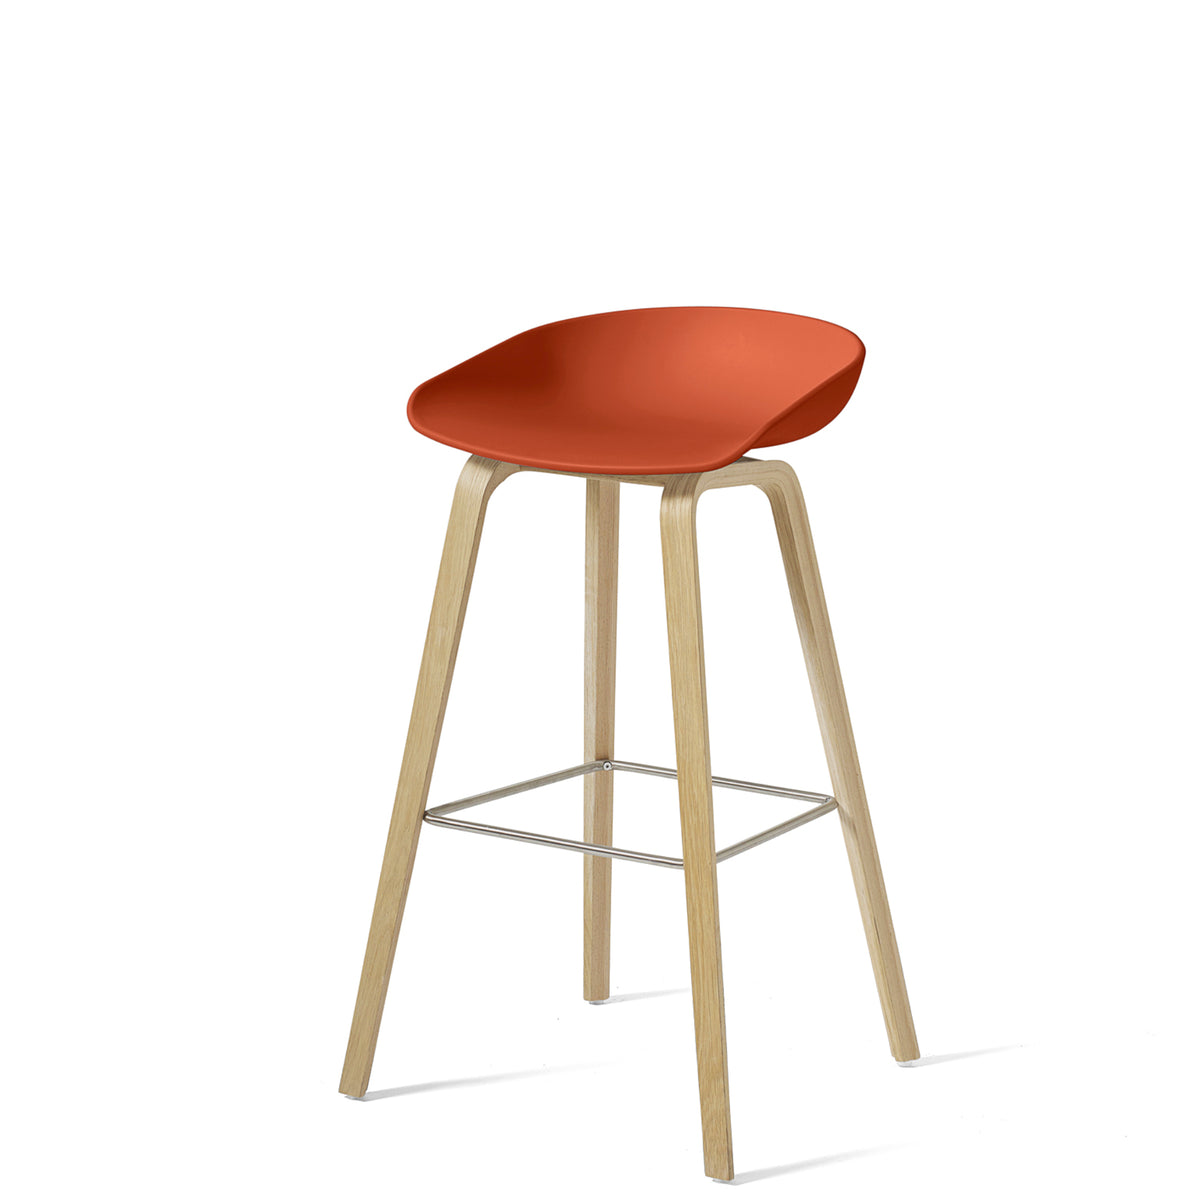 HAY About A Stool AAS32 850mm Orange Matt Lacquered Oak Base